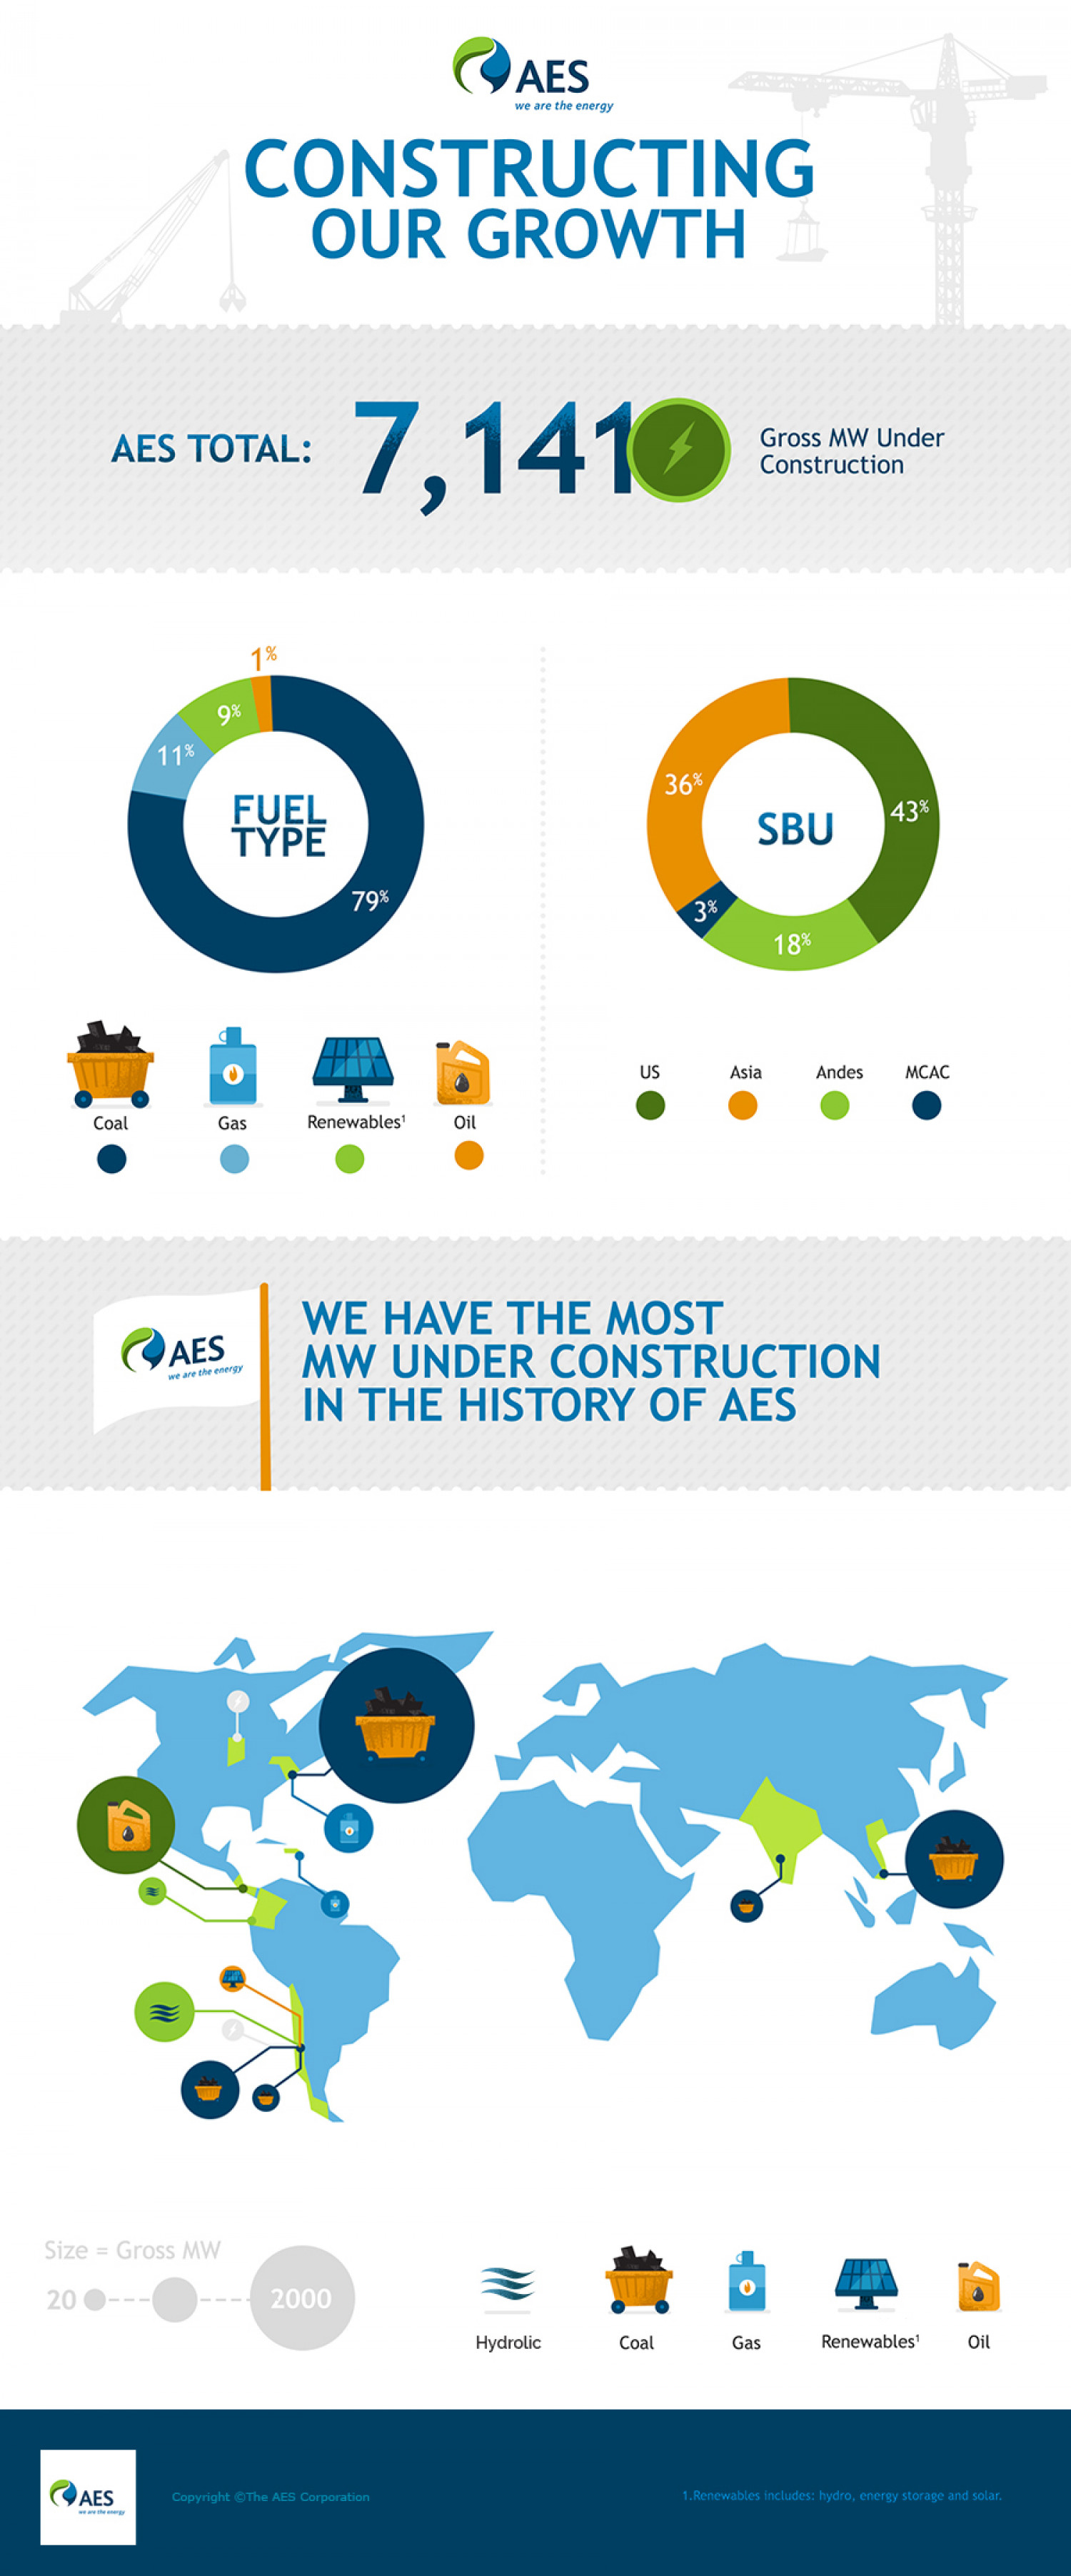 AES constructing our growth Infographic